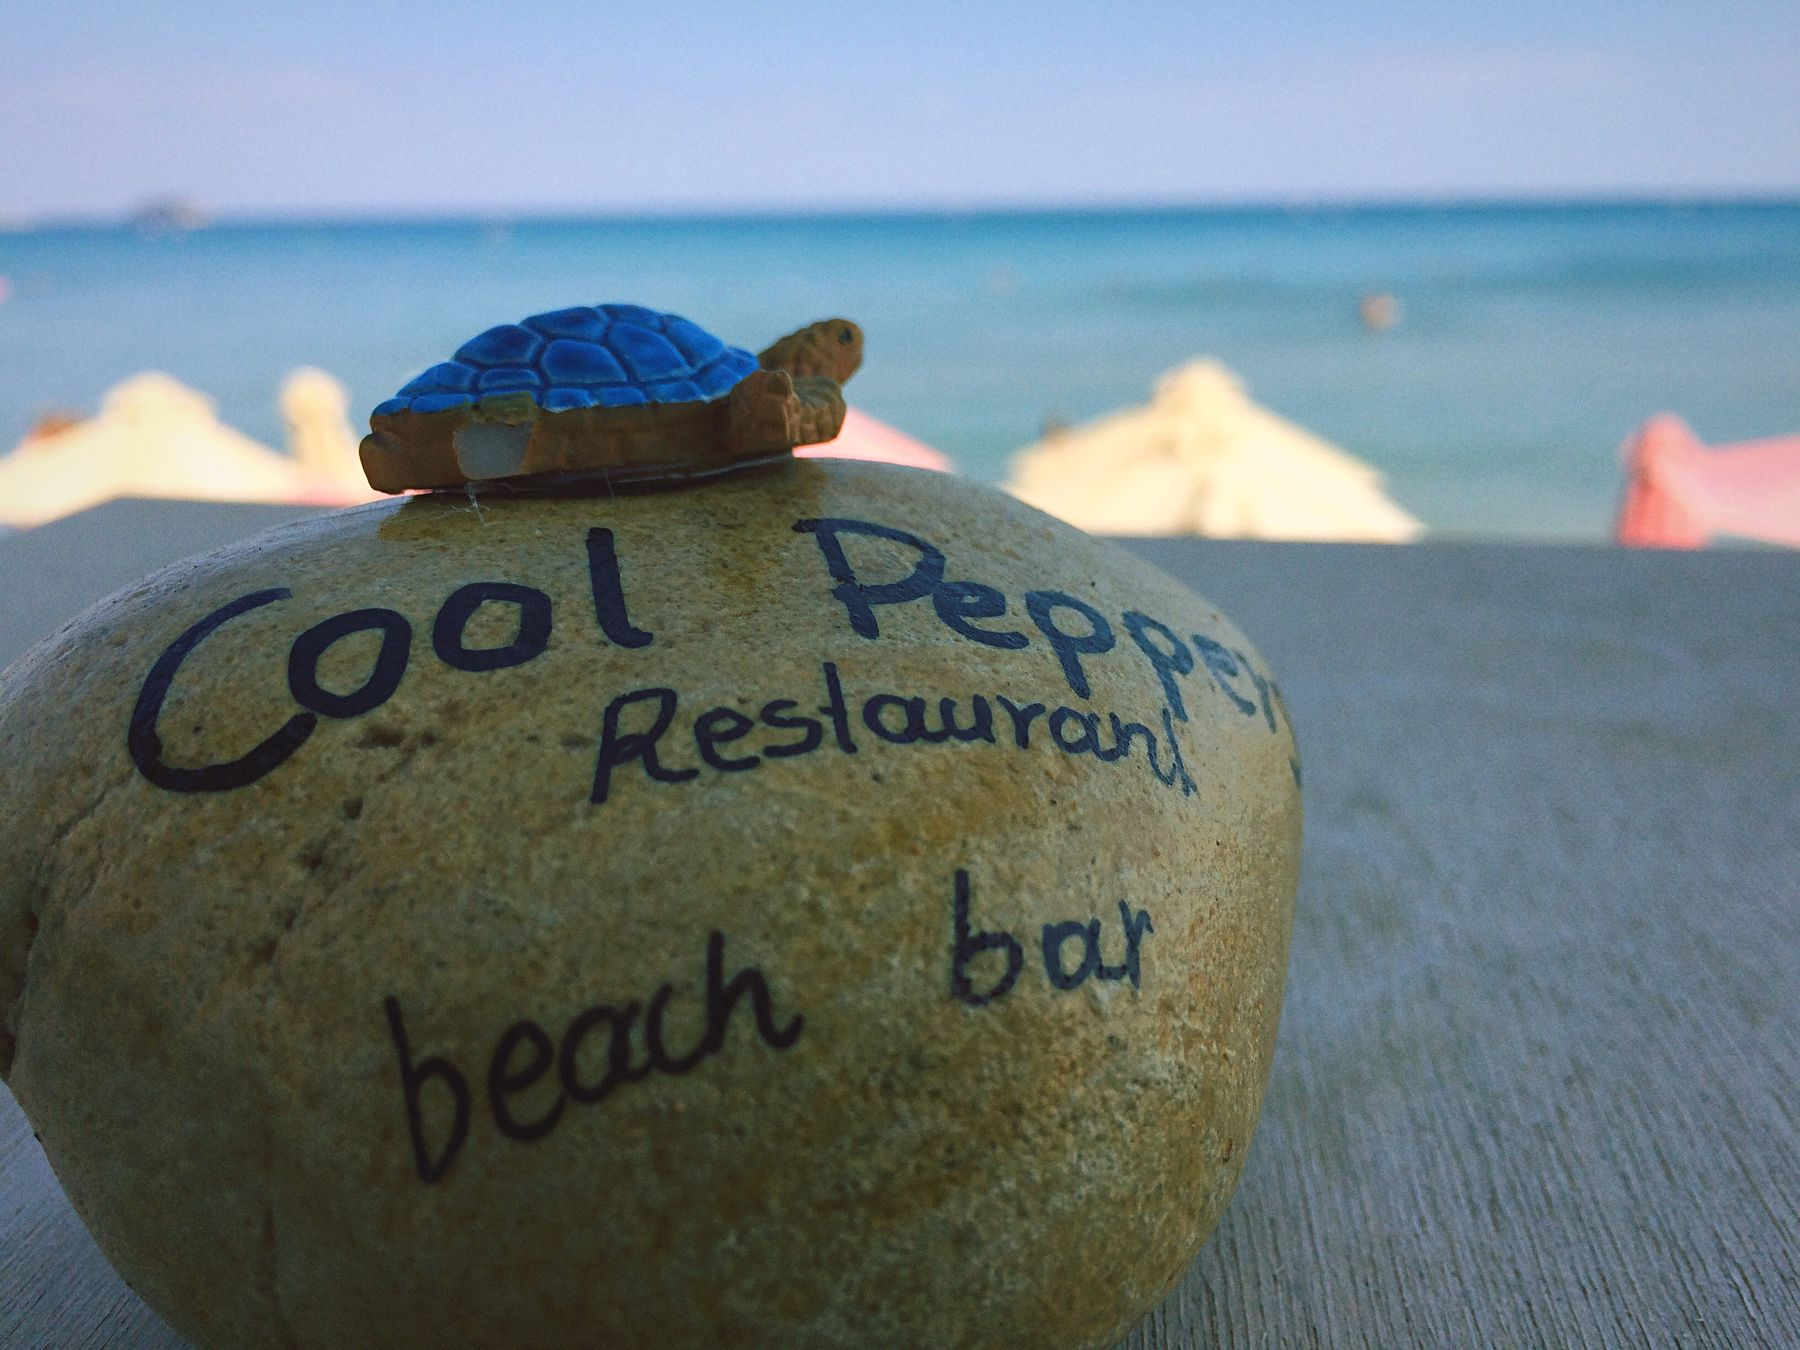 Promoting at it's finest. Cool Peppers Restaurant has great food, a spectacular view overlooking the sea, and awesome little stones with the name of the resturant on them, and a miniature turtle atop of them